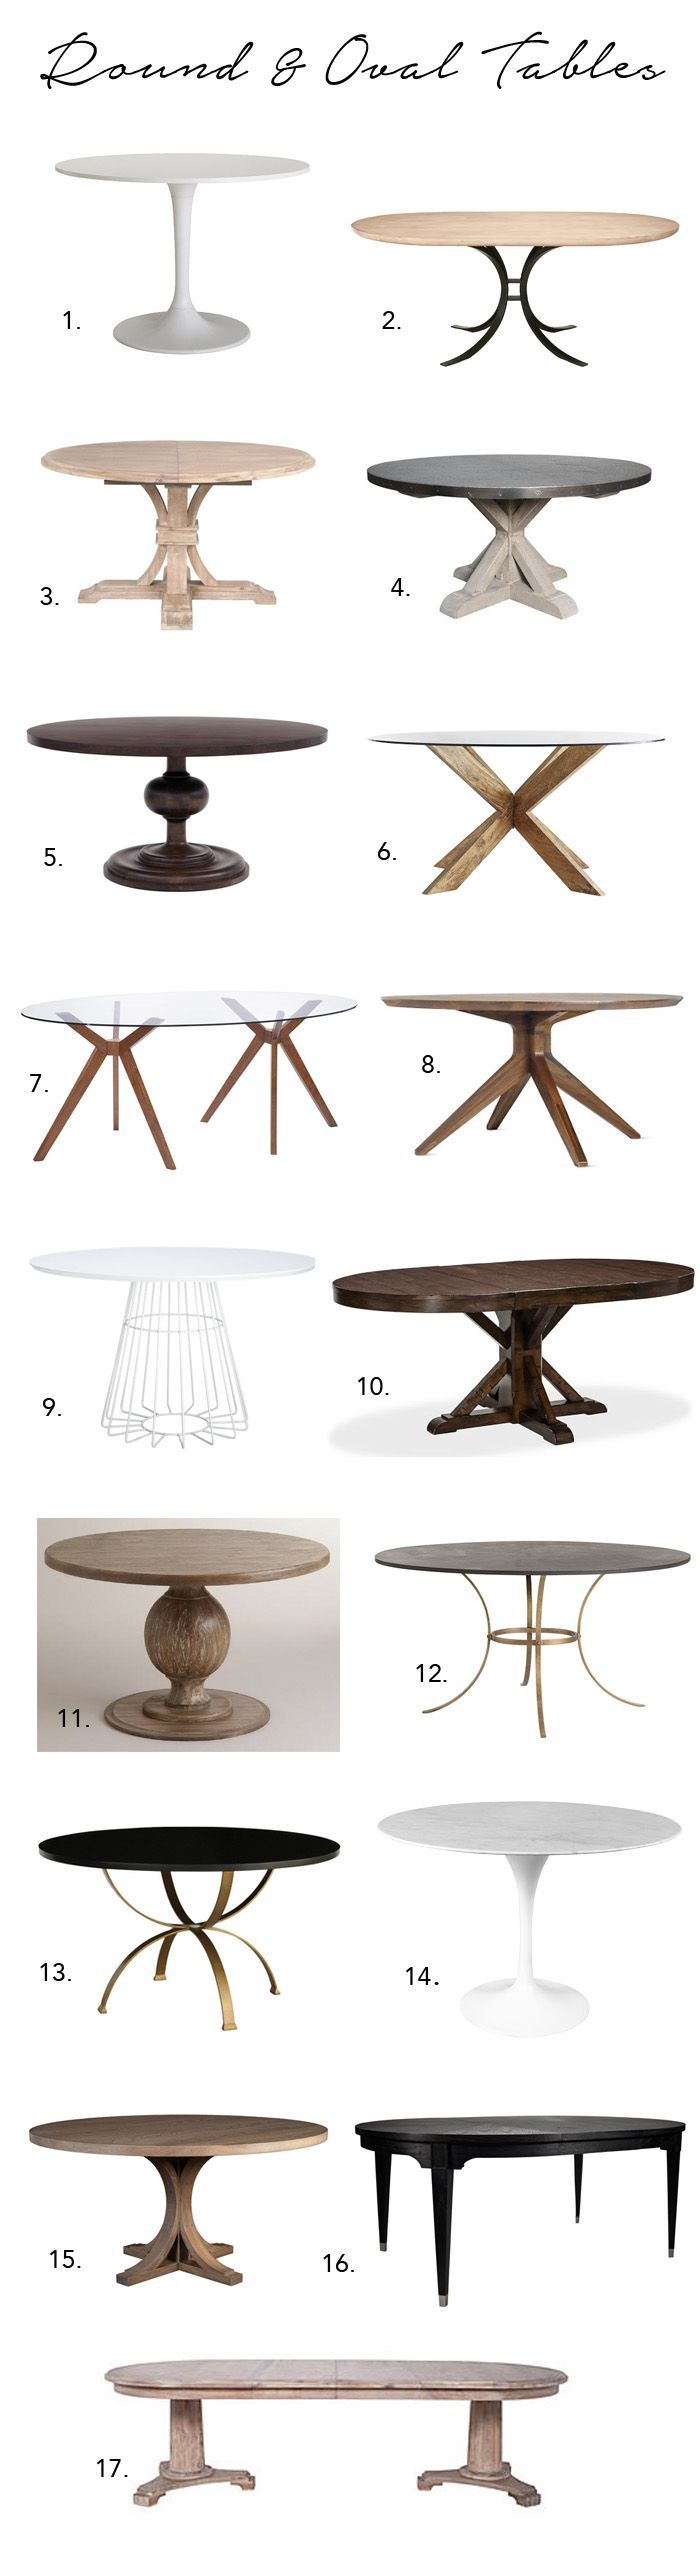 small round kitchen table small round kitchen table Elements of Style Blog A Huge Dining Table Roundup http